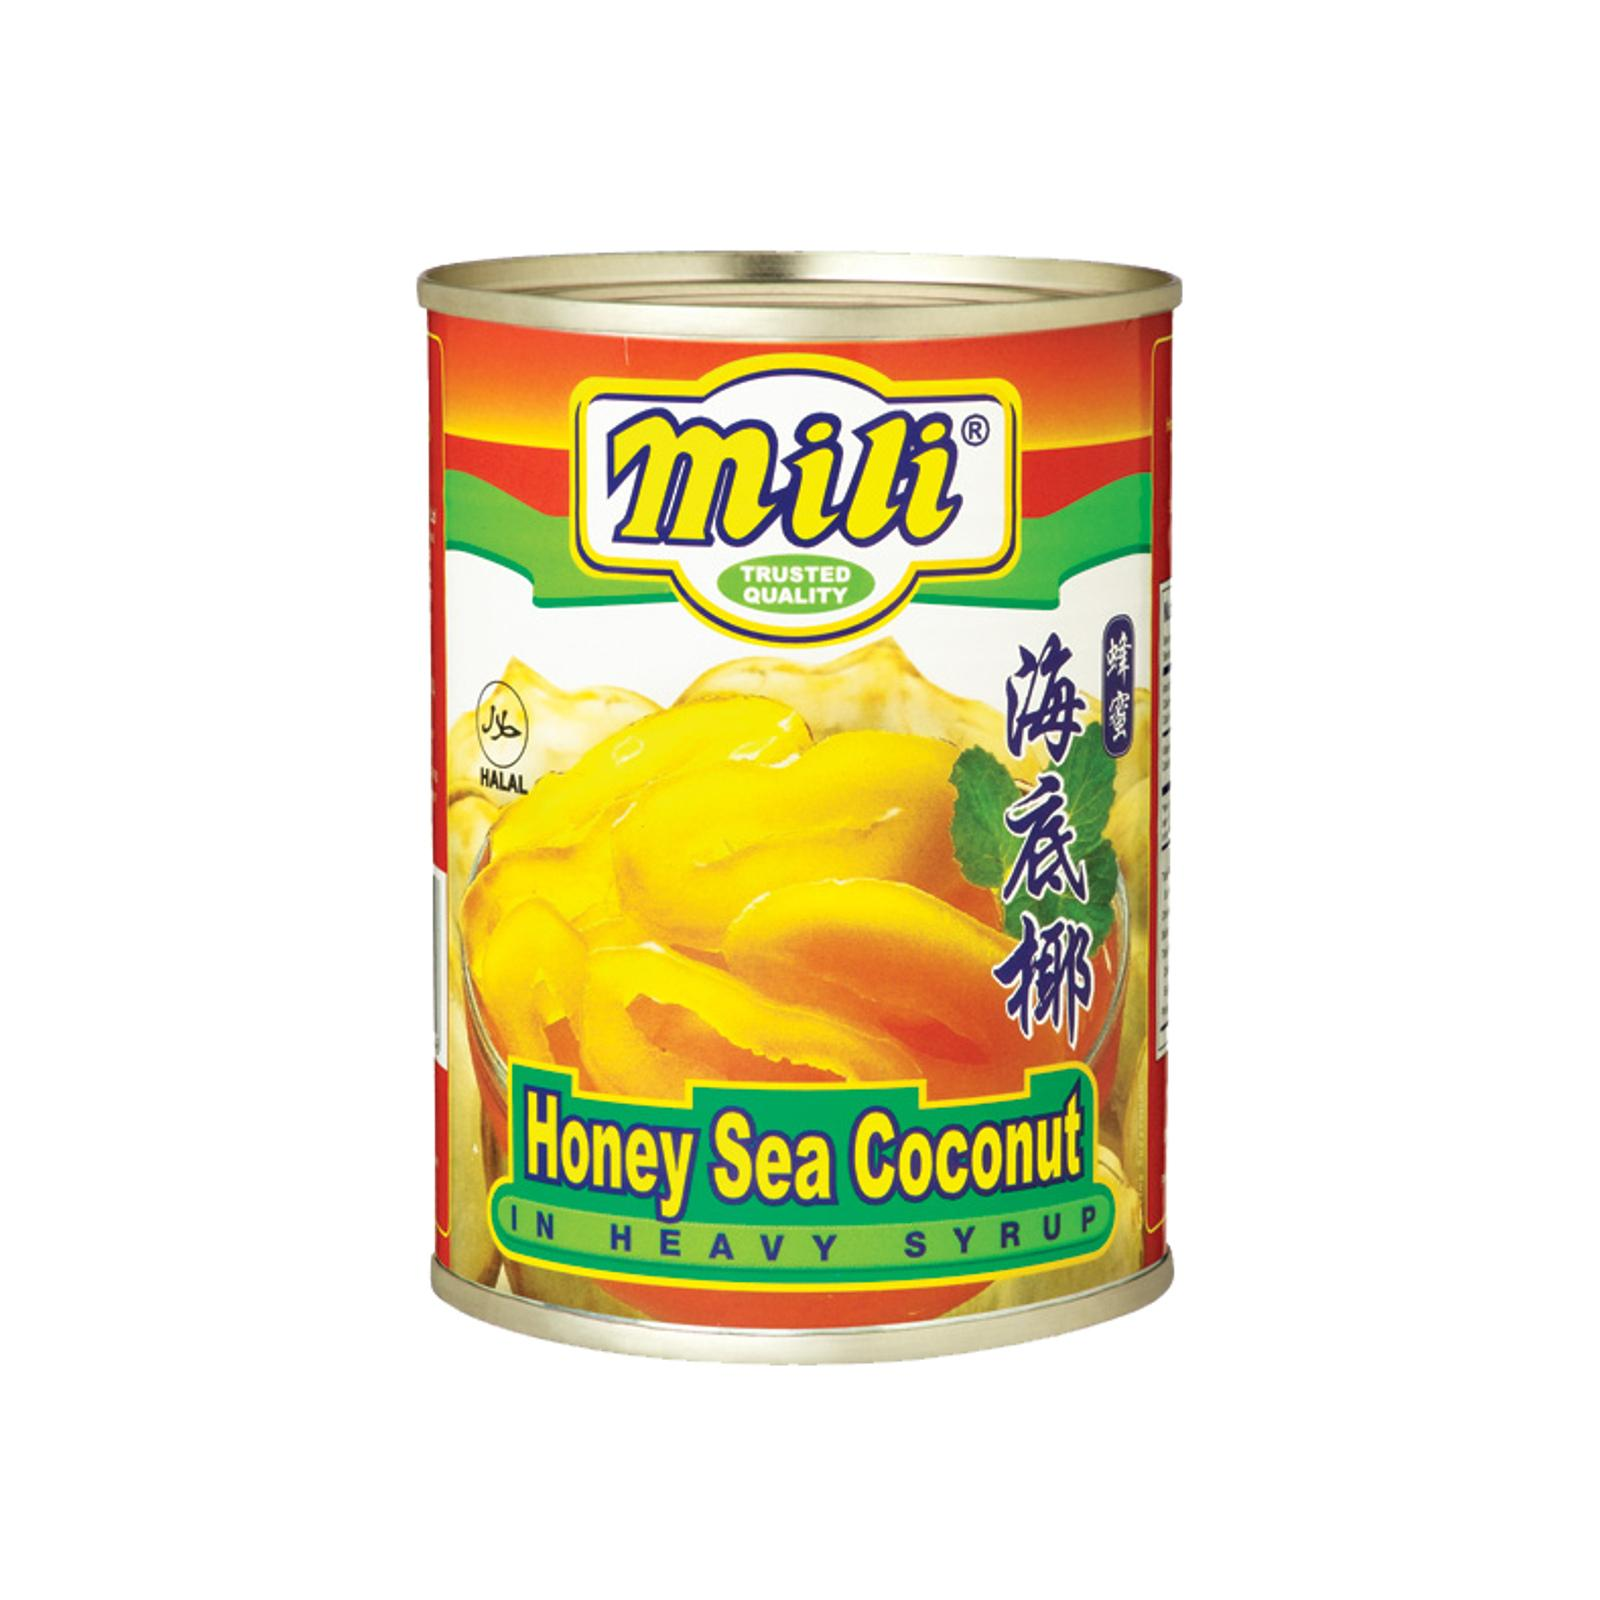 Mili Honey Sea Coconut - 565g X 2 (charges Includes Shipping Fee) By Best Buy Mini Mart.